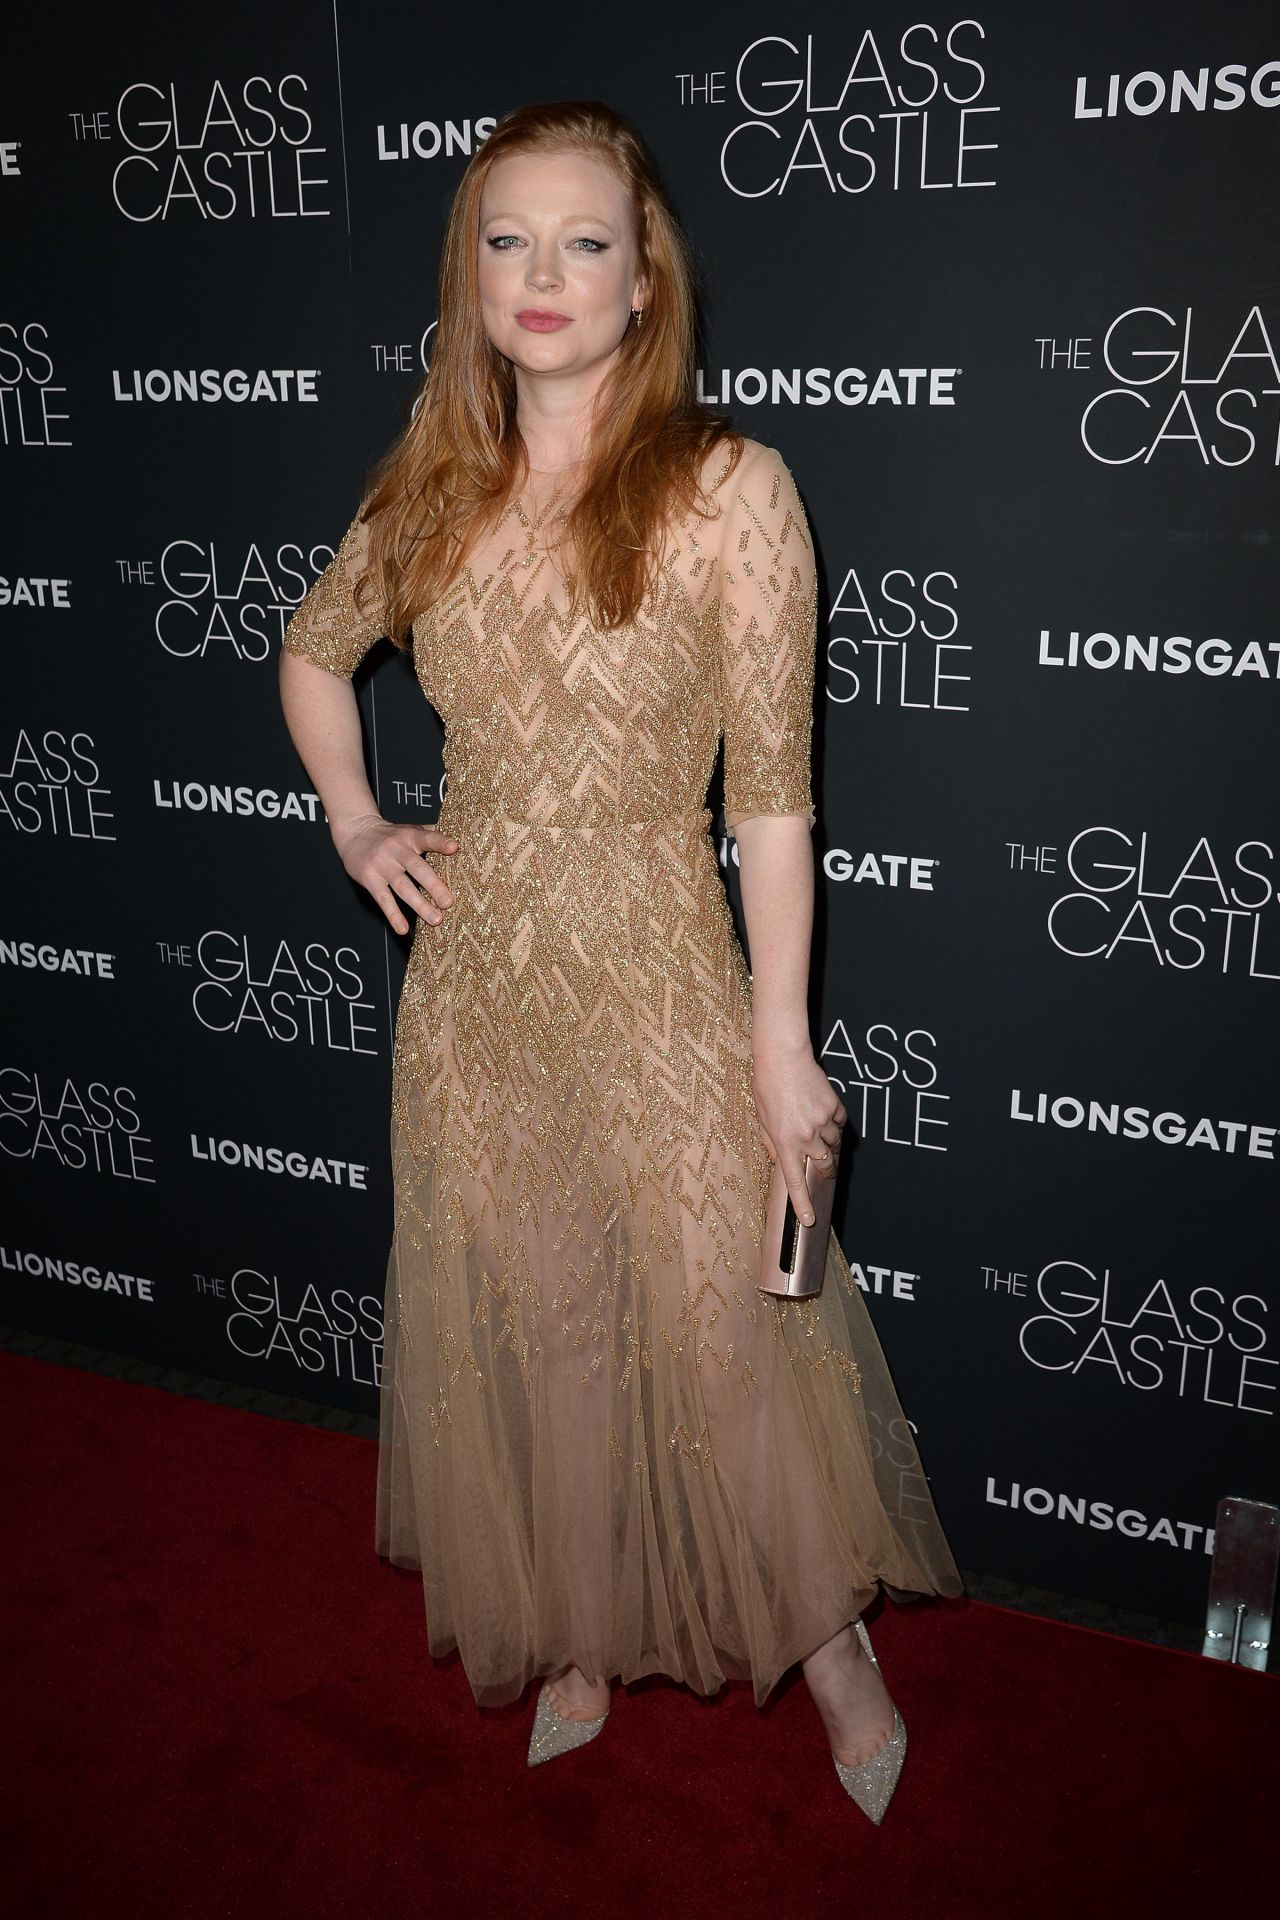 Sarah Snook Quot The Glass Castle Quot Premiere In New York 08